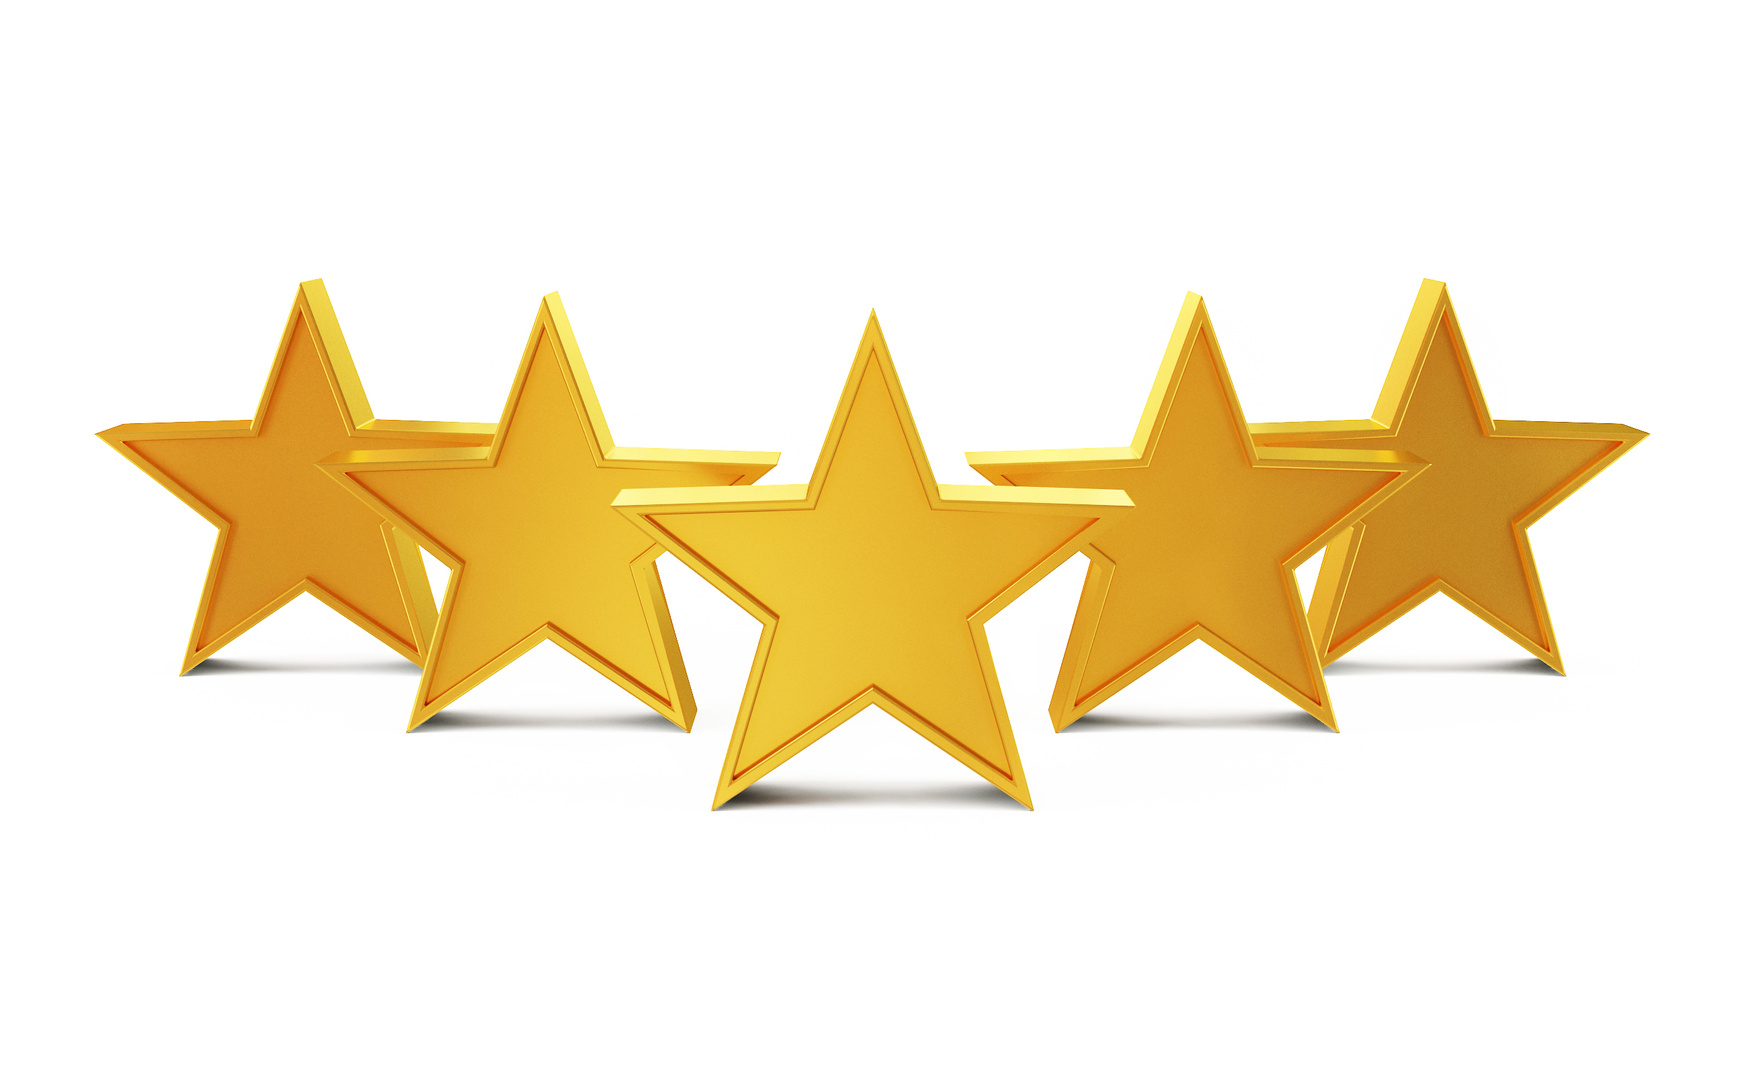 Bay Ridge Chrysler Dodge Jeep RAM